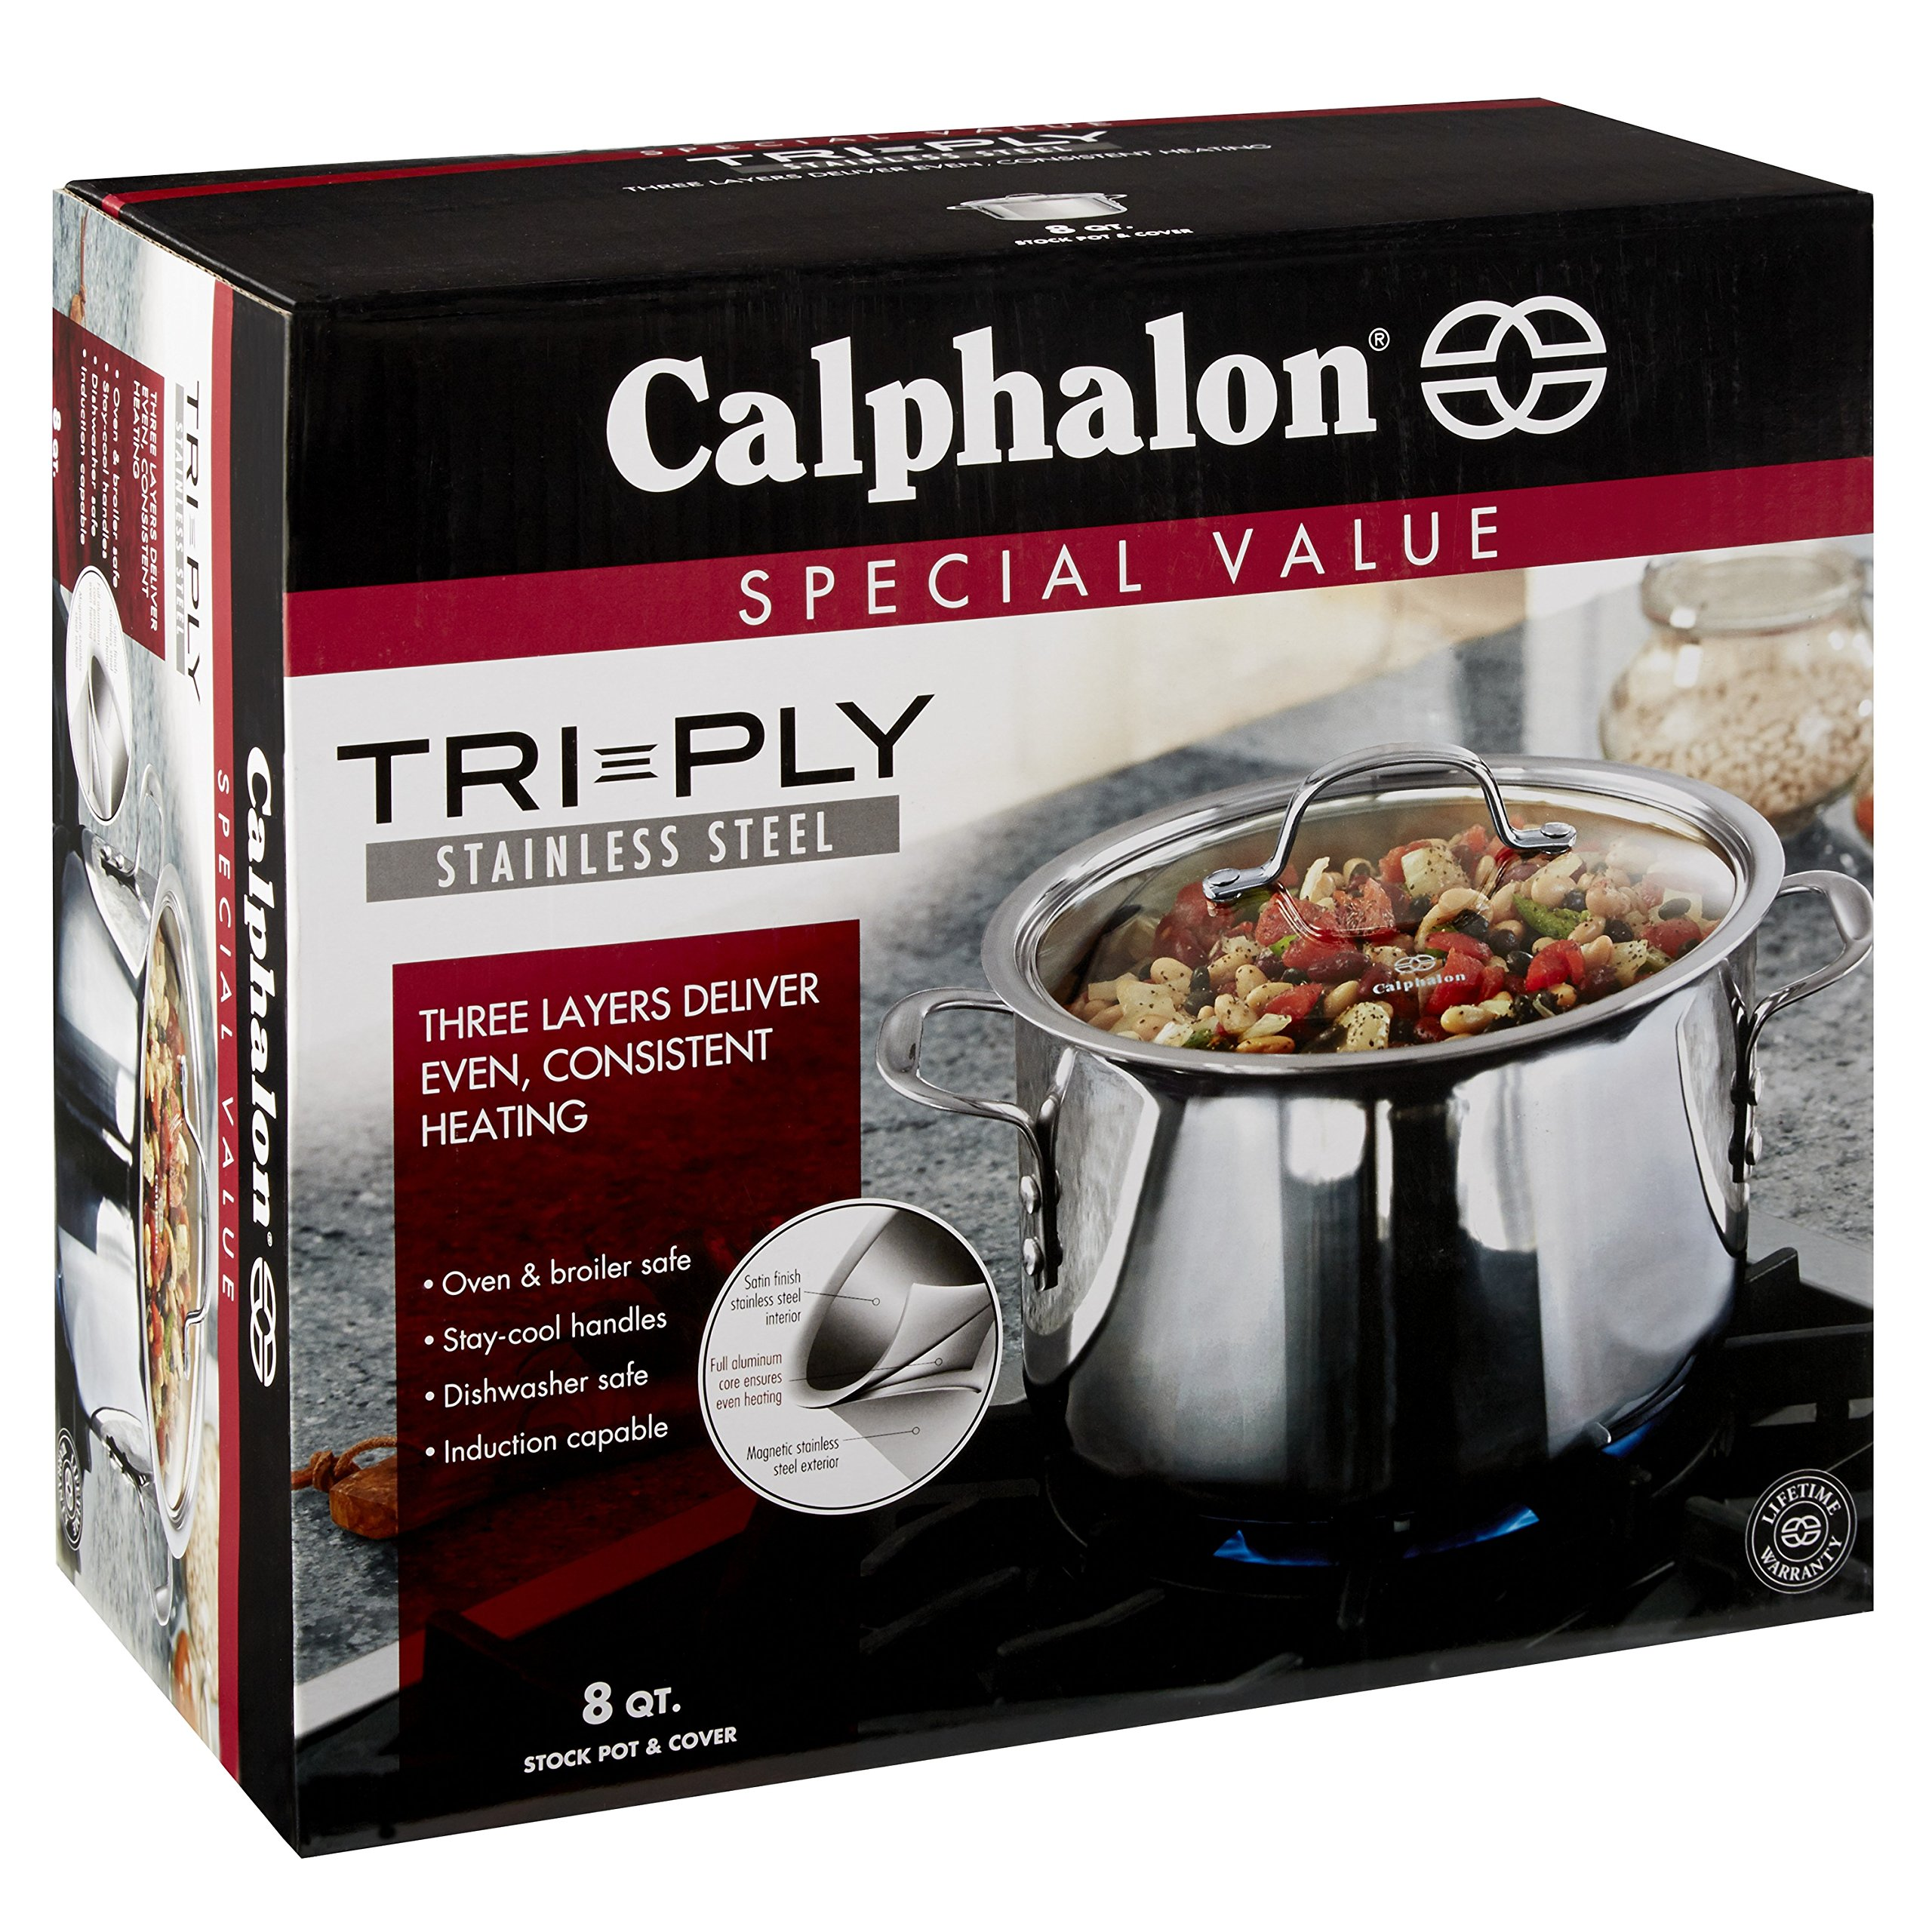 Calphalon (1767727) Tri-Ply Stainless Steel 8-Quart Stock Pot with Cover by Calphalon (Image #5)